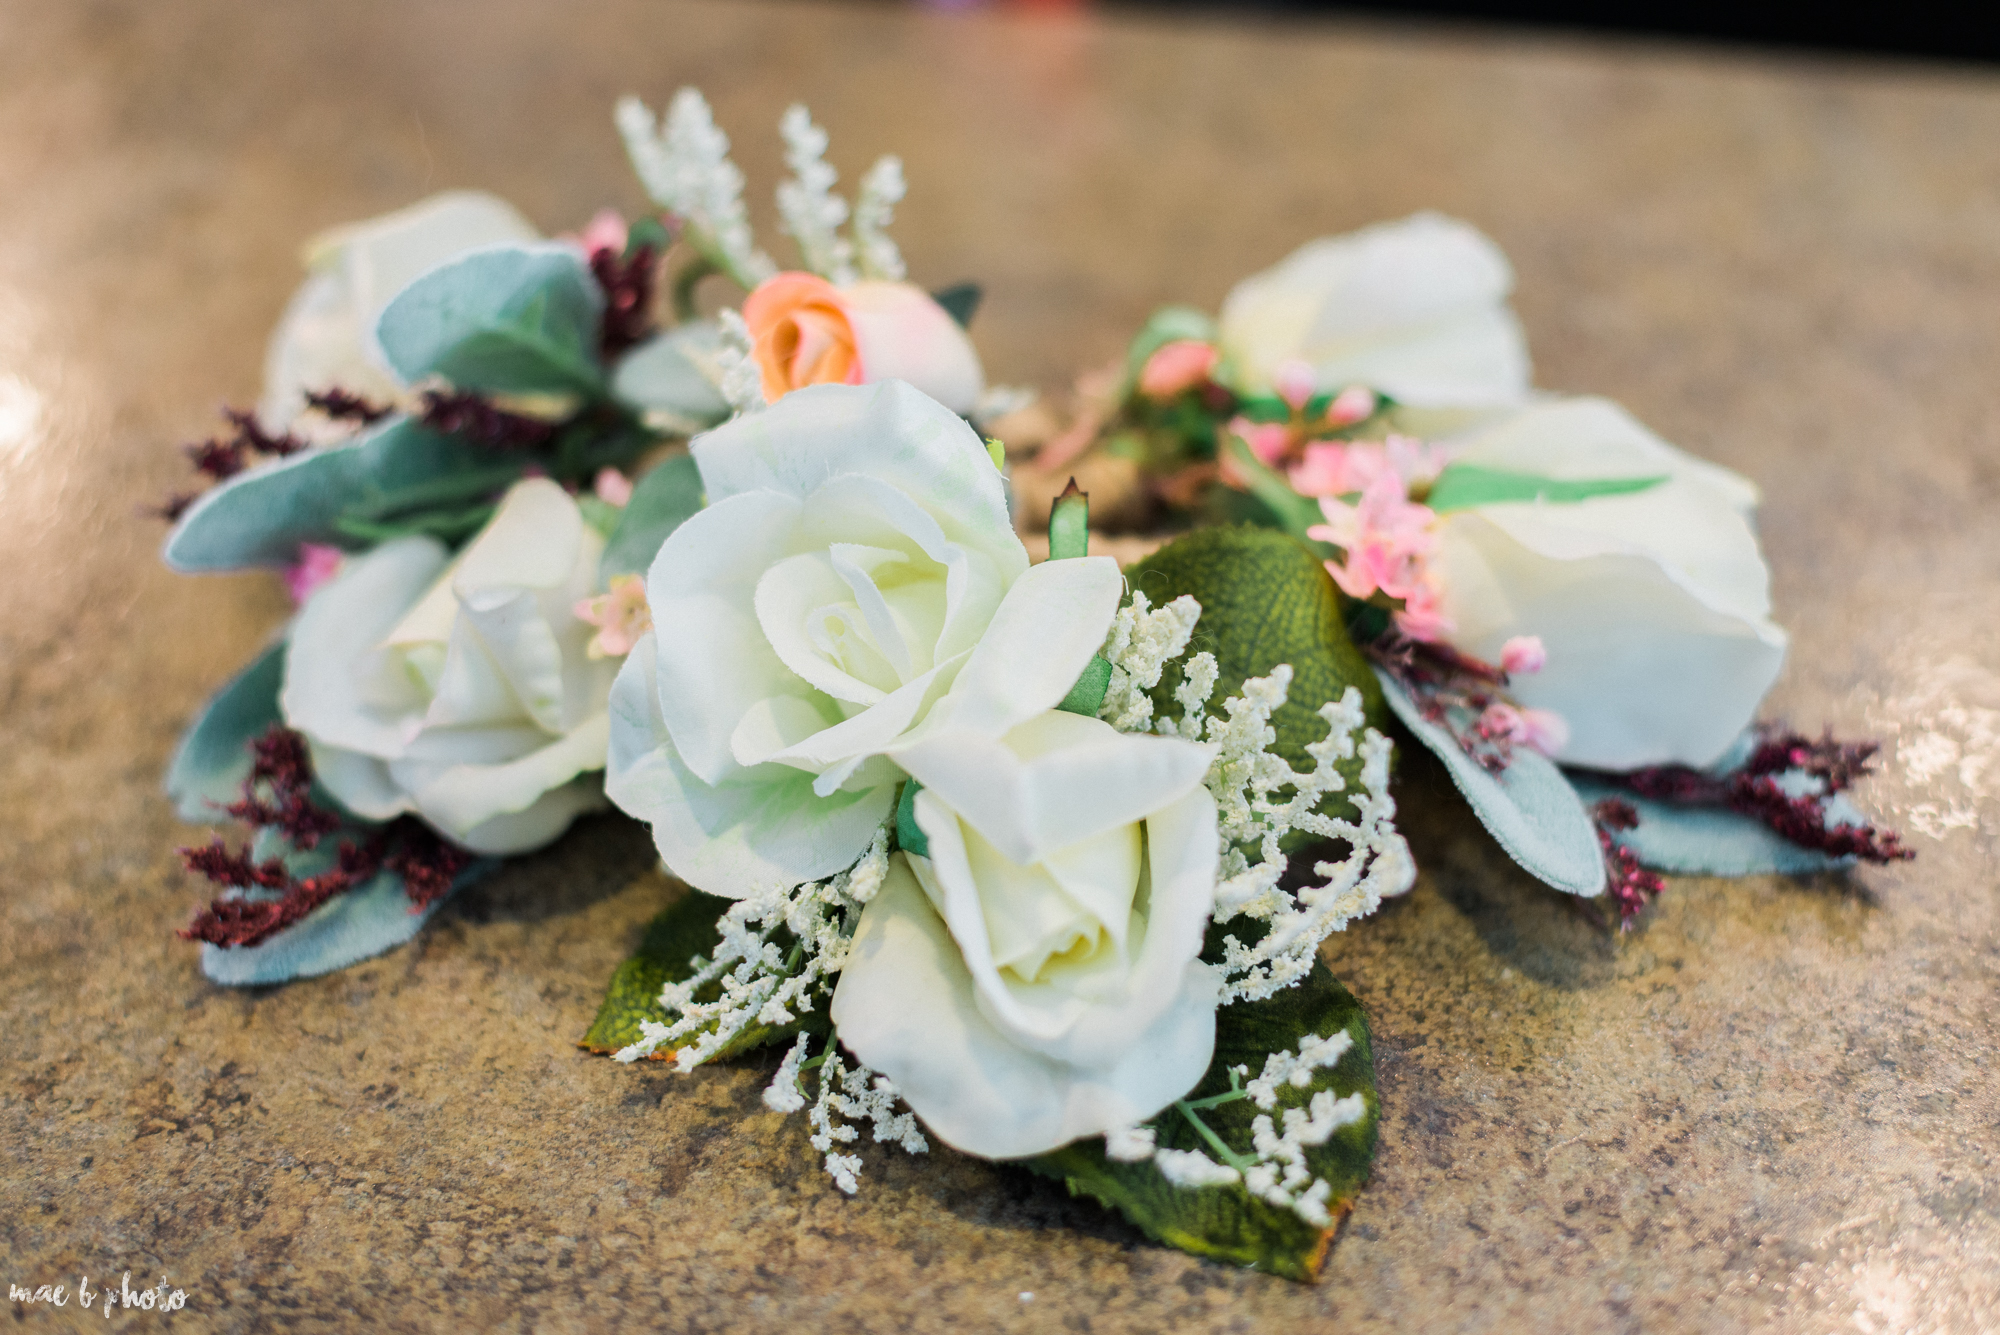 Amber & Kyle's Rustic Barn Wedding at SNPJ in Enon Valley, PA by Mae B Photo-25.jpg